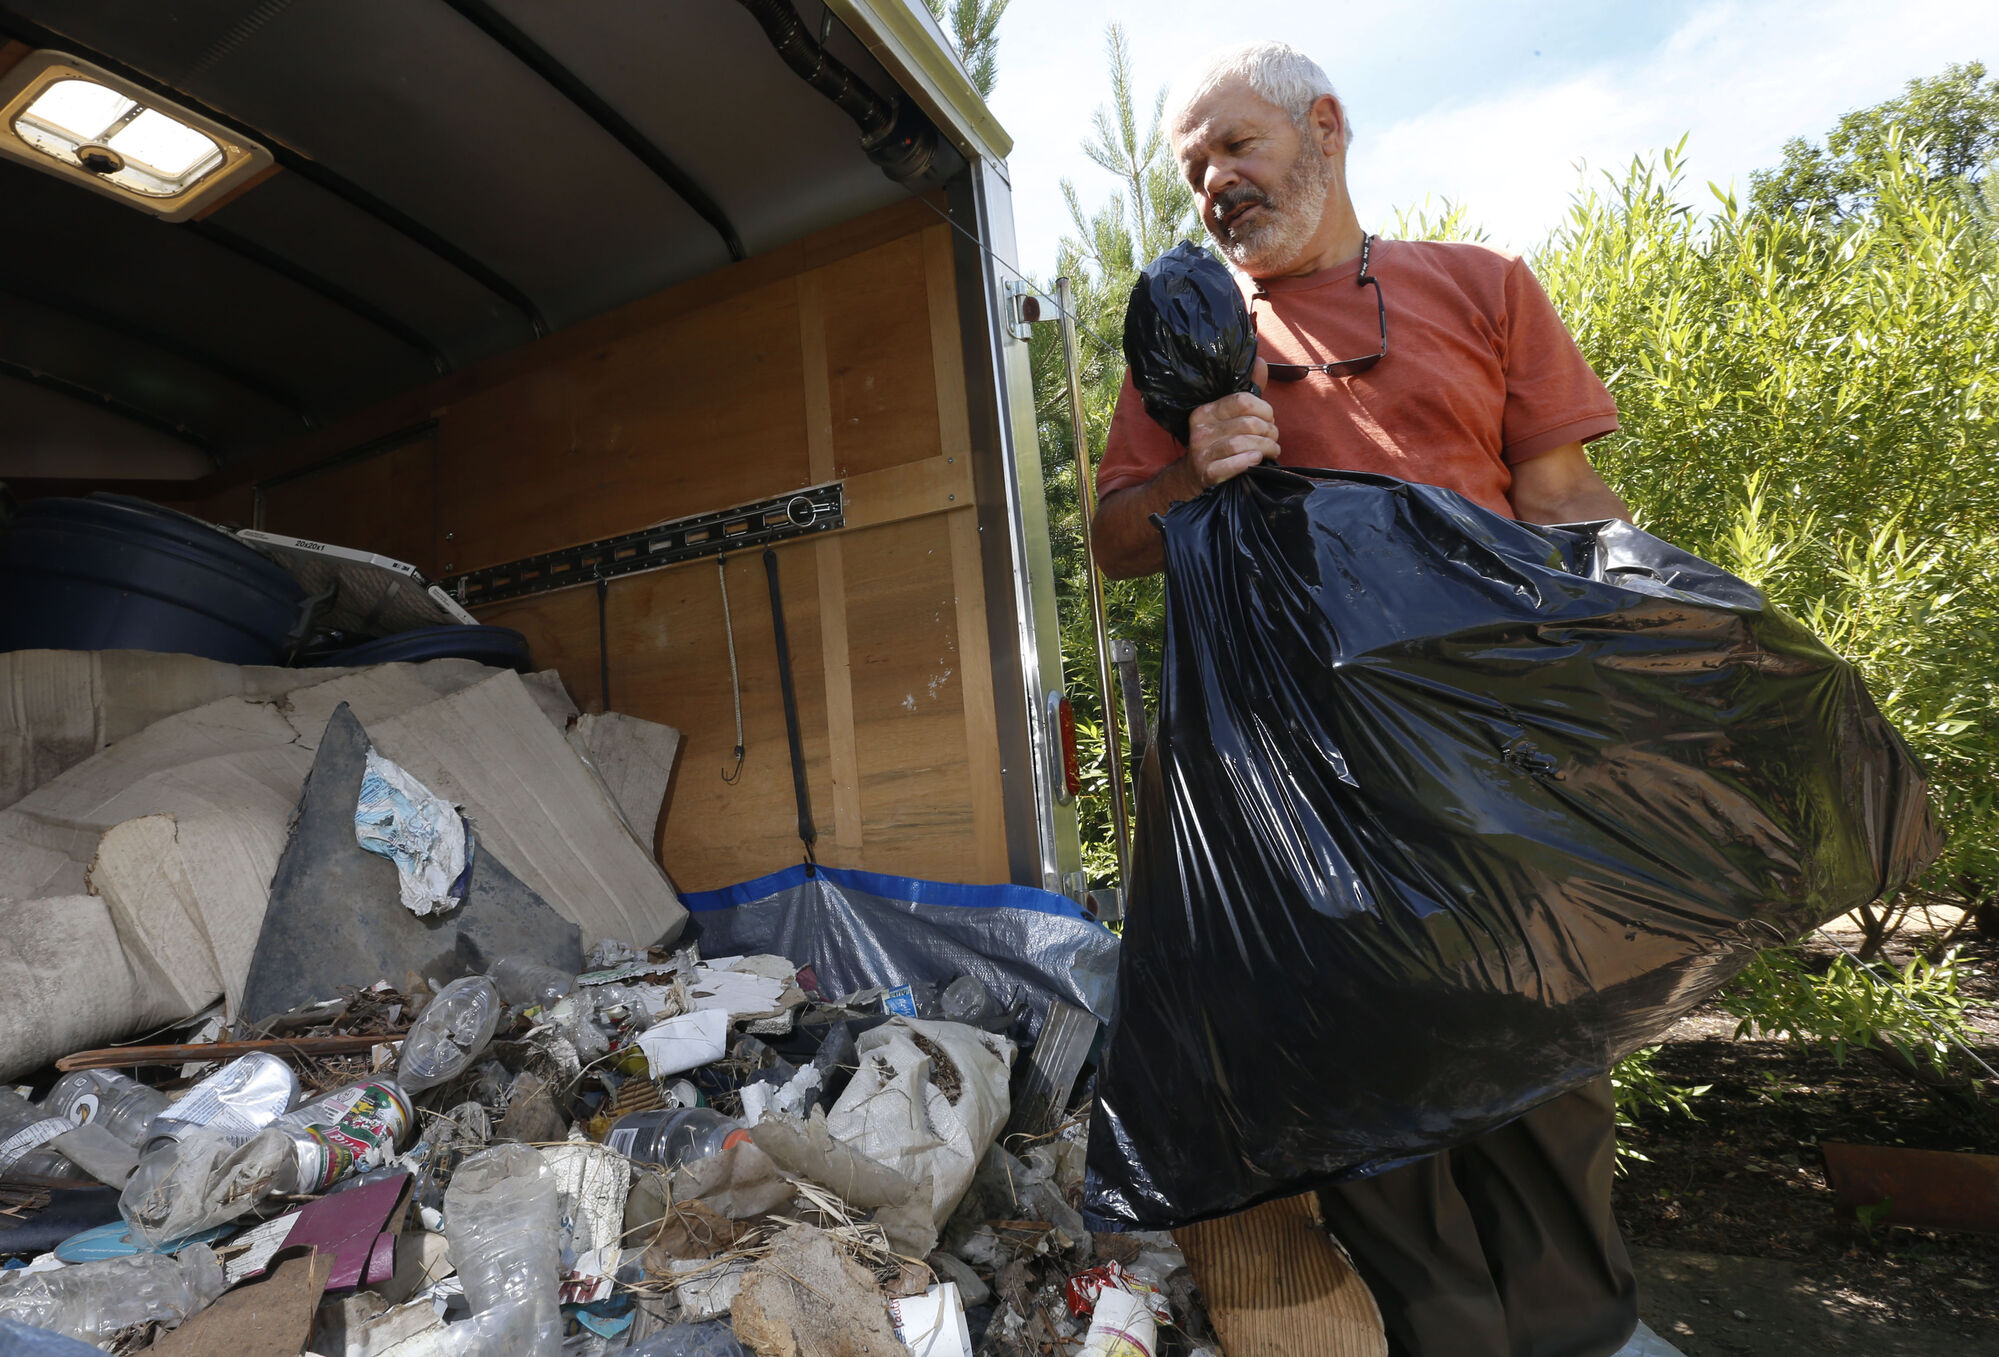 Bill Fisher with some of the trash recently collected along the Perimeter Highway near Brady Road. He will haul it to the dump.